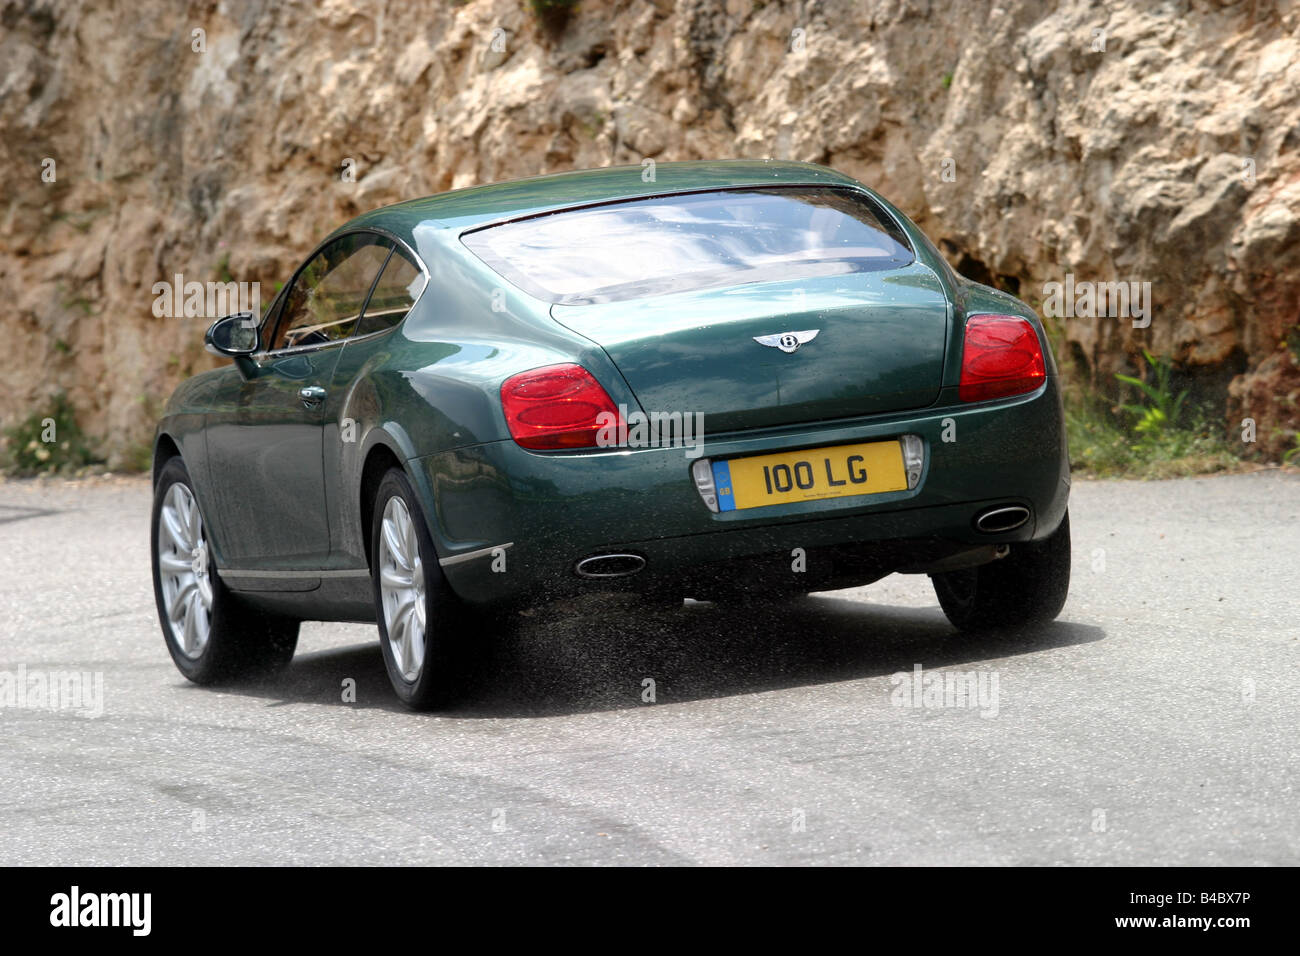 Car bentley continental gt roadster model year 2003 coupe car bentley continental gt roadster model year 2003 coupecoupe dark green driving diagonal from the back rear view co vanachro Gallery